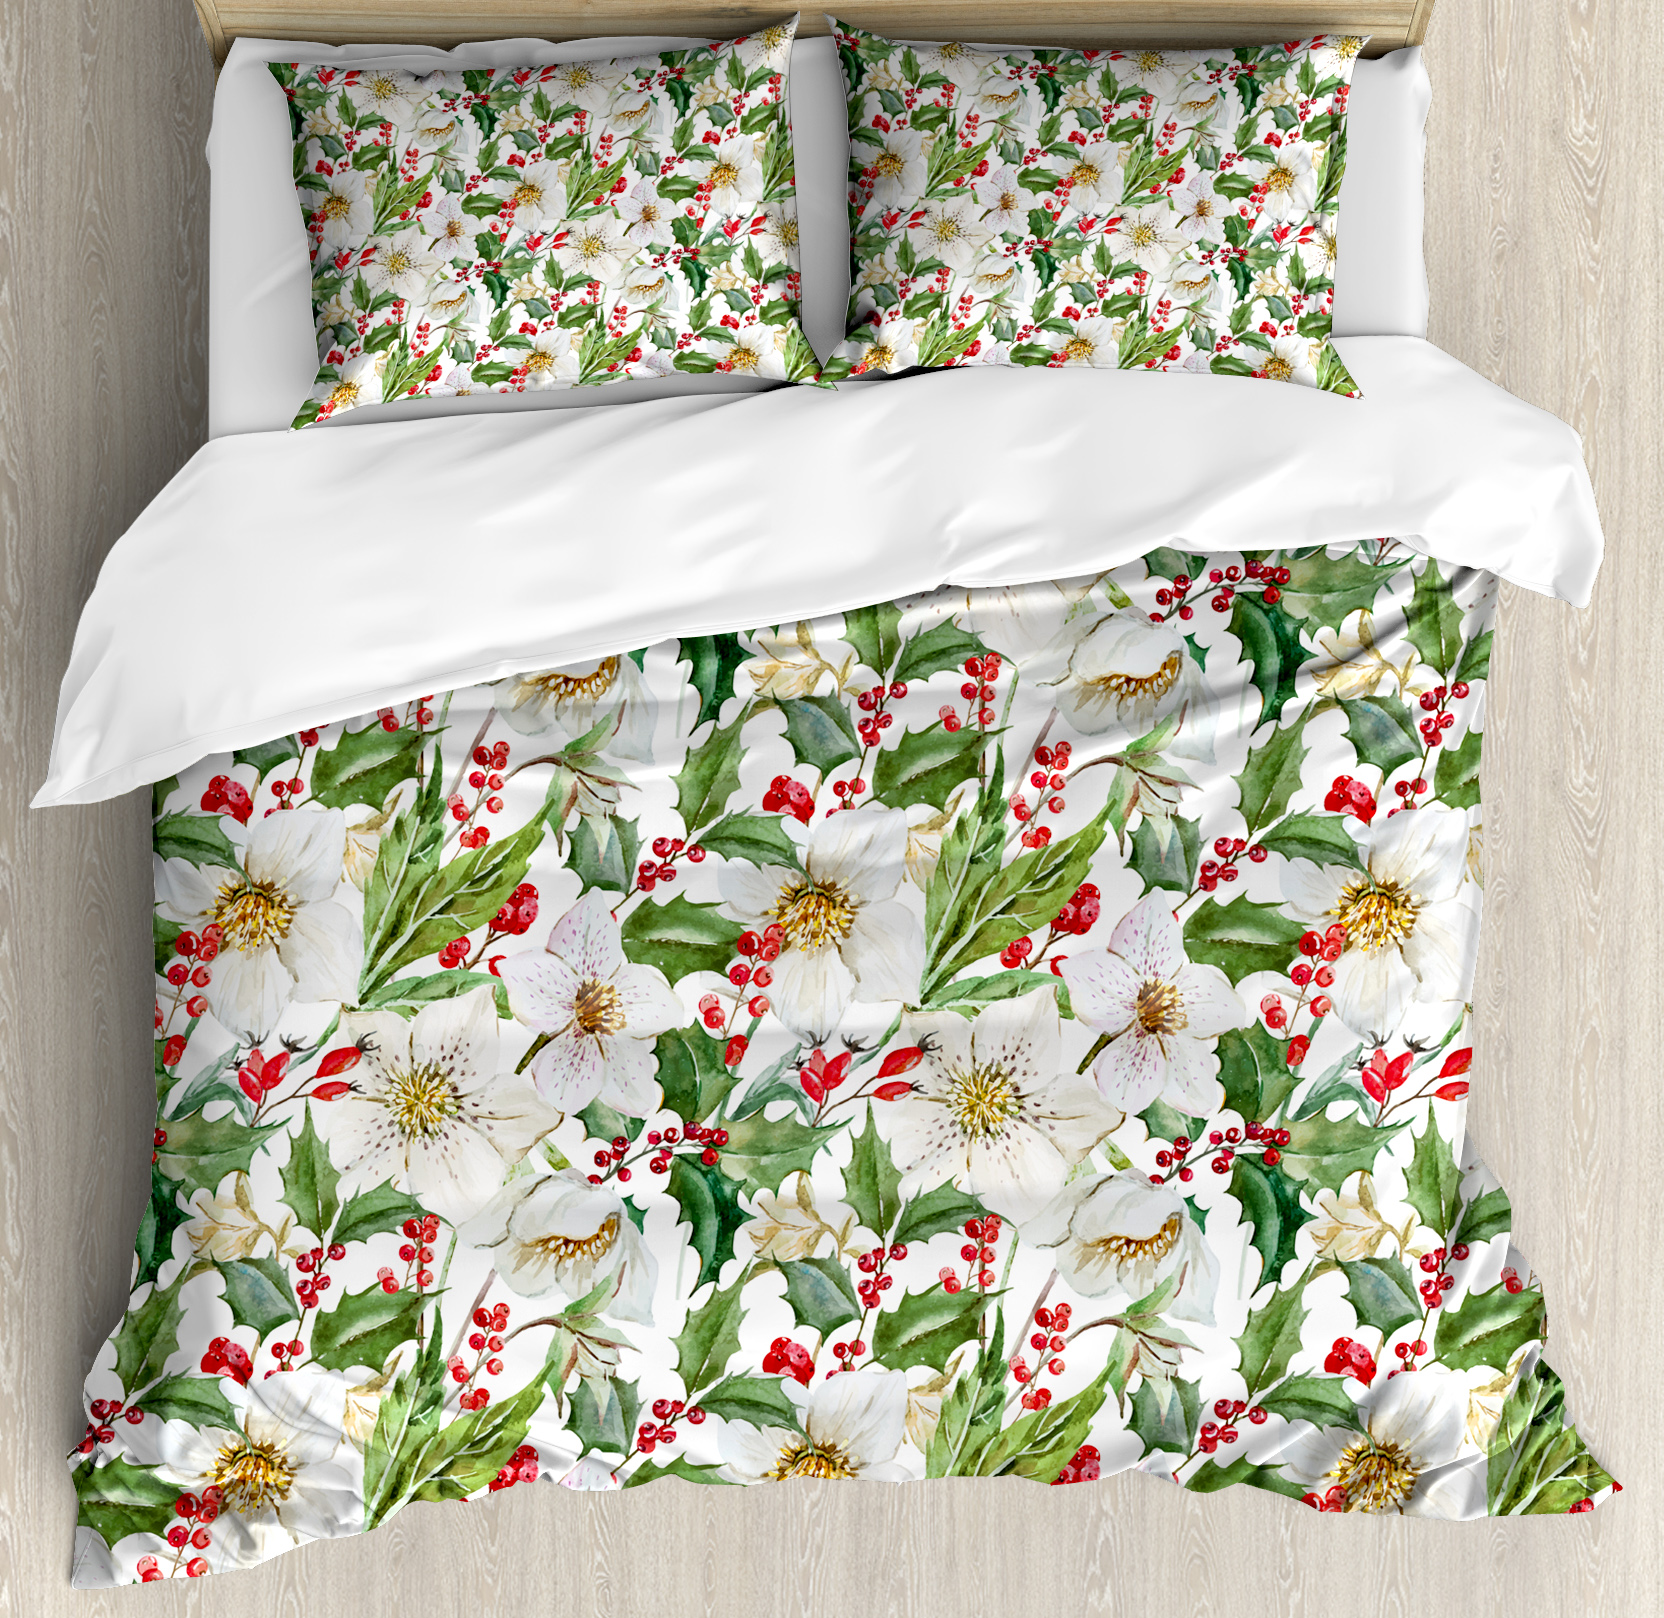 Watercolor Duvet Cover Set, Christmas Themed Floral Poinsettia Winter Inspirations Berries Leaf, Decorative Bedding Set with Pillow Shams, Vermilion Green Yellow, by Ambesonne